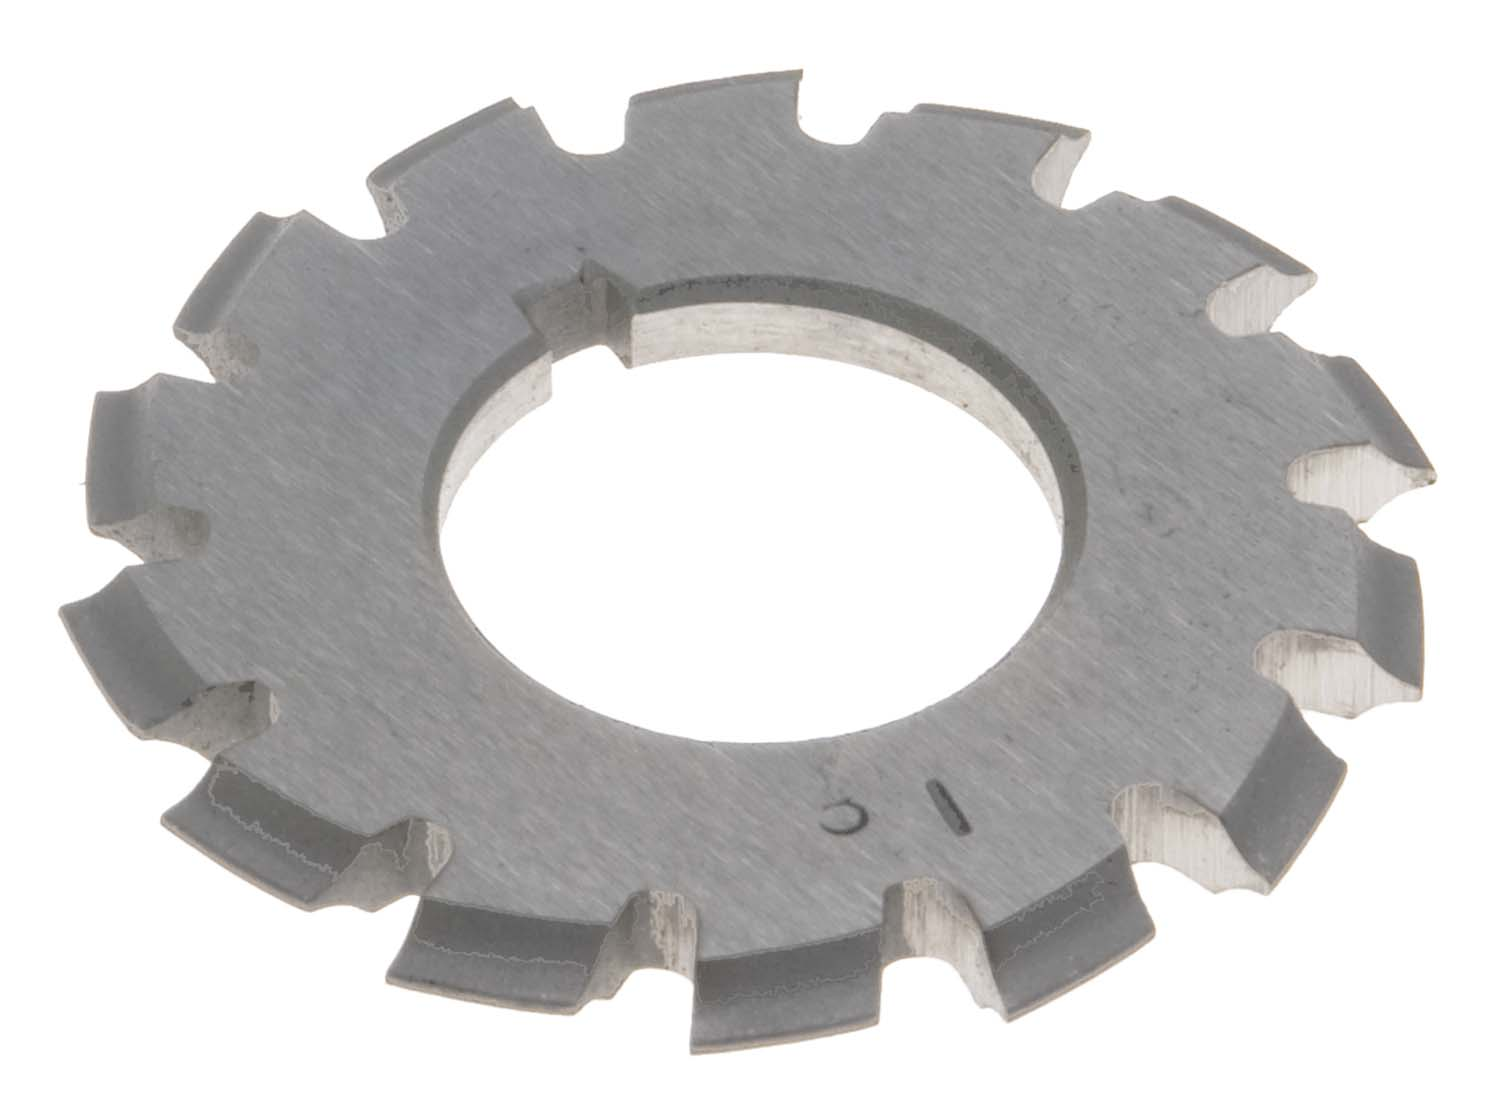 24 Diametral Pitch # 4 Involute Gear Cutter - 1 Inch ID - 14-1/2 Degree Pressure Angle